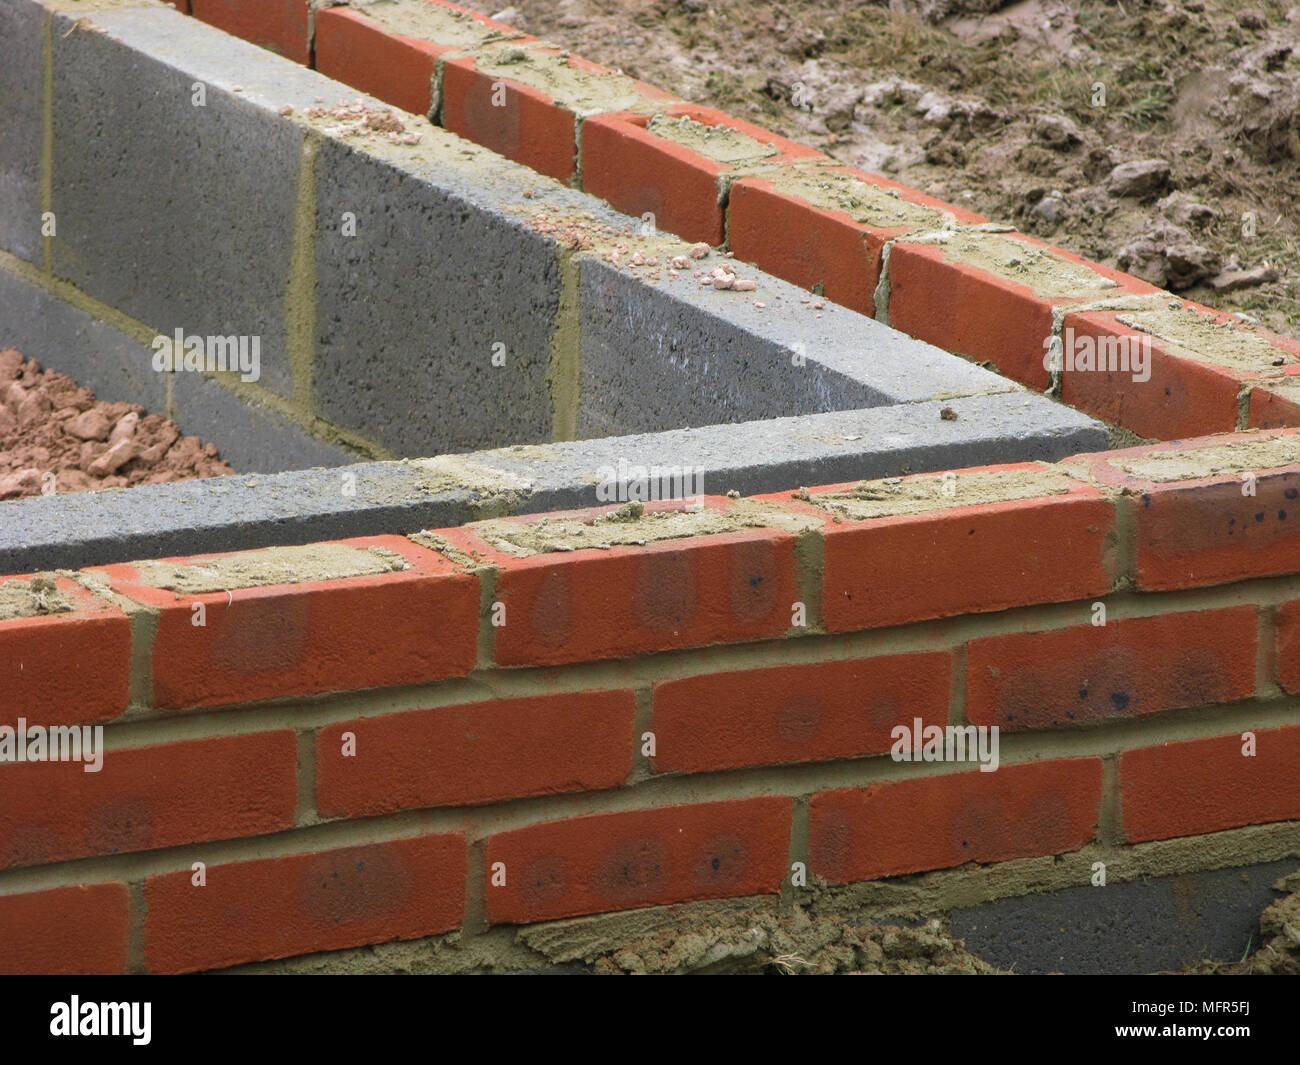 Bricks & thermalite bricks built up to the damp course in a wall - Stock Image